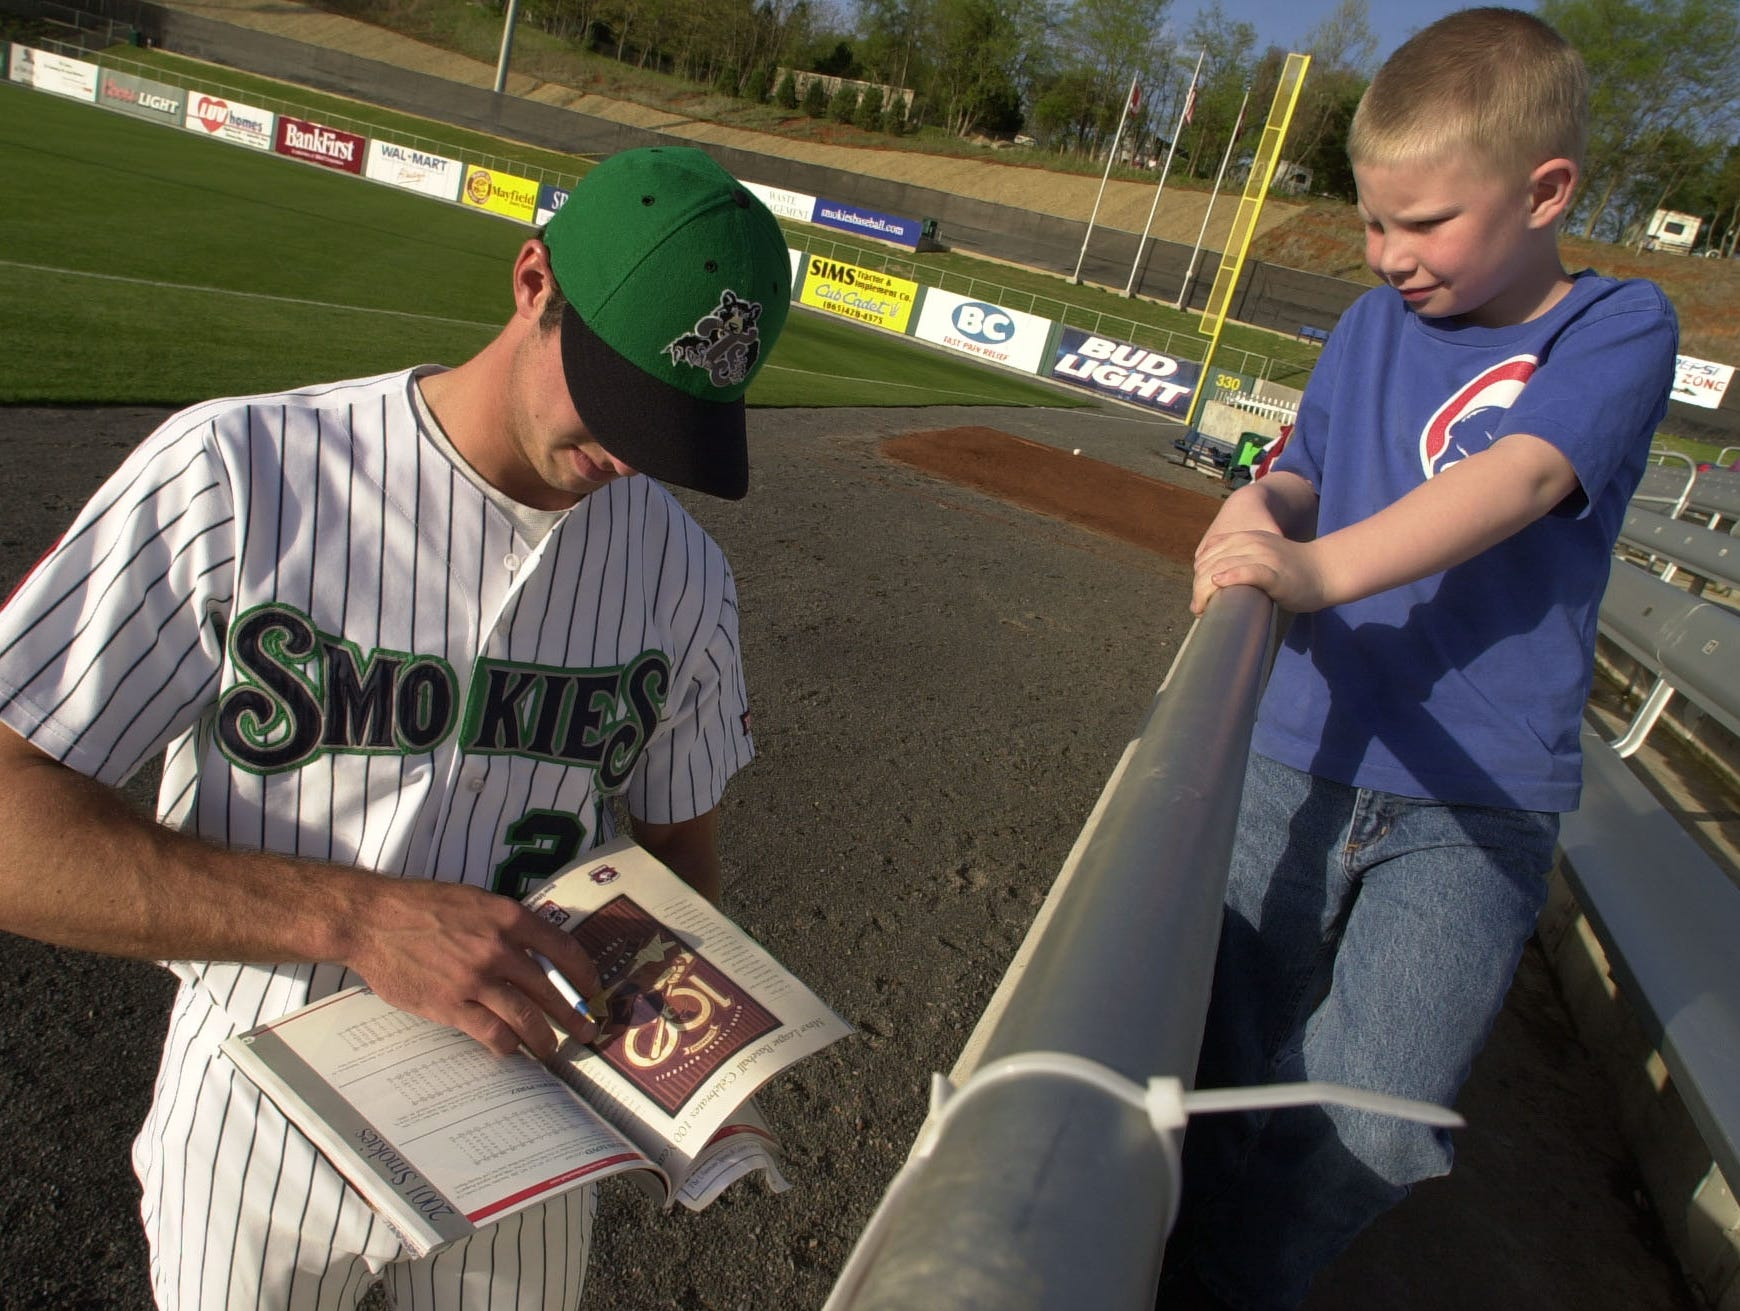 Tennessee Smokies' Josh Phelps signs an autograph for seven-year-old fan Casey Henry just prior to the season's opening game against Chattanooga Friday evening.